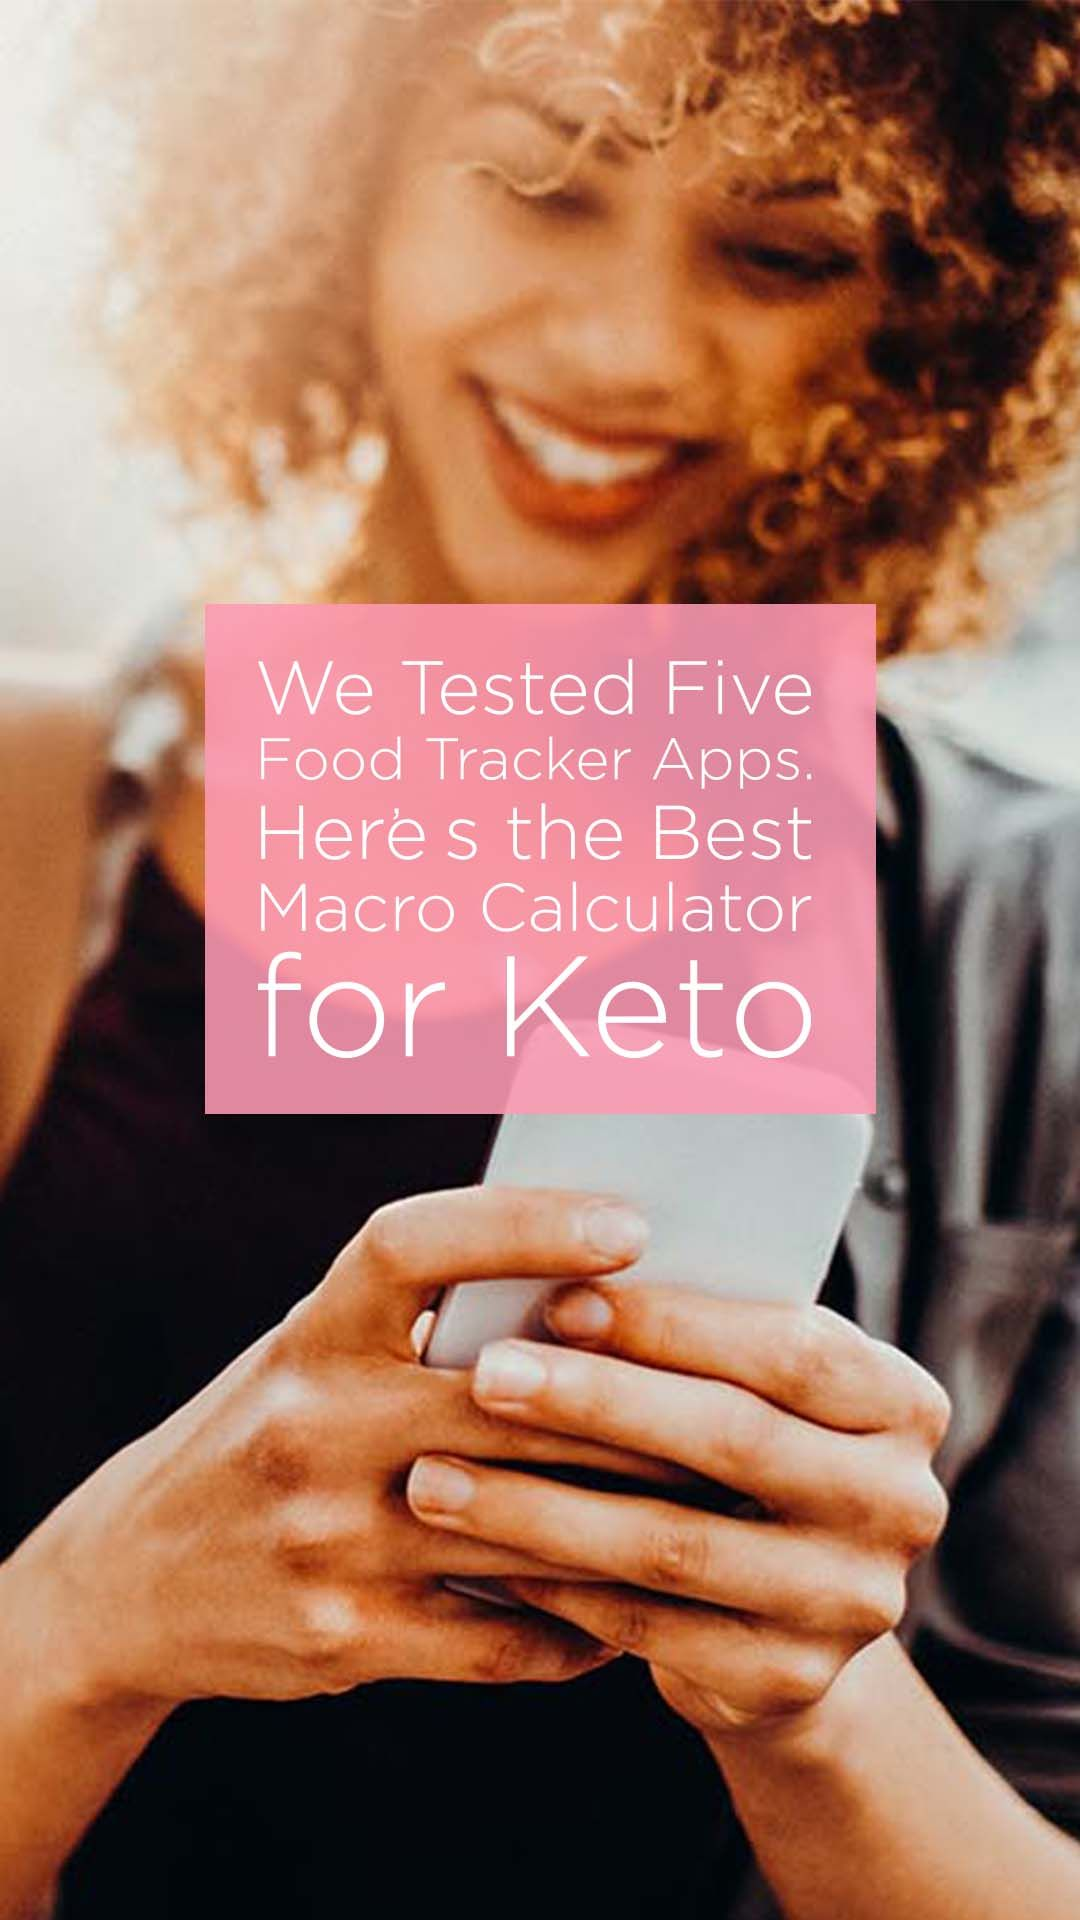 We Tested Five Food Tracker Apps. Here's the Best Macro